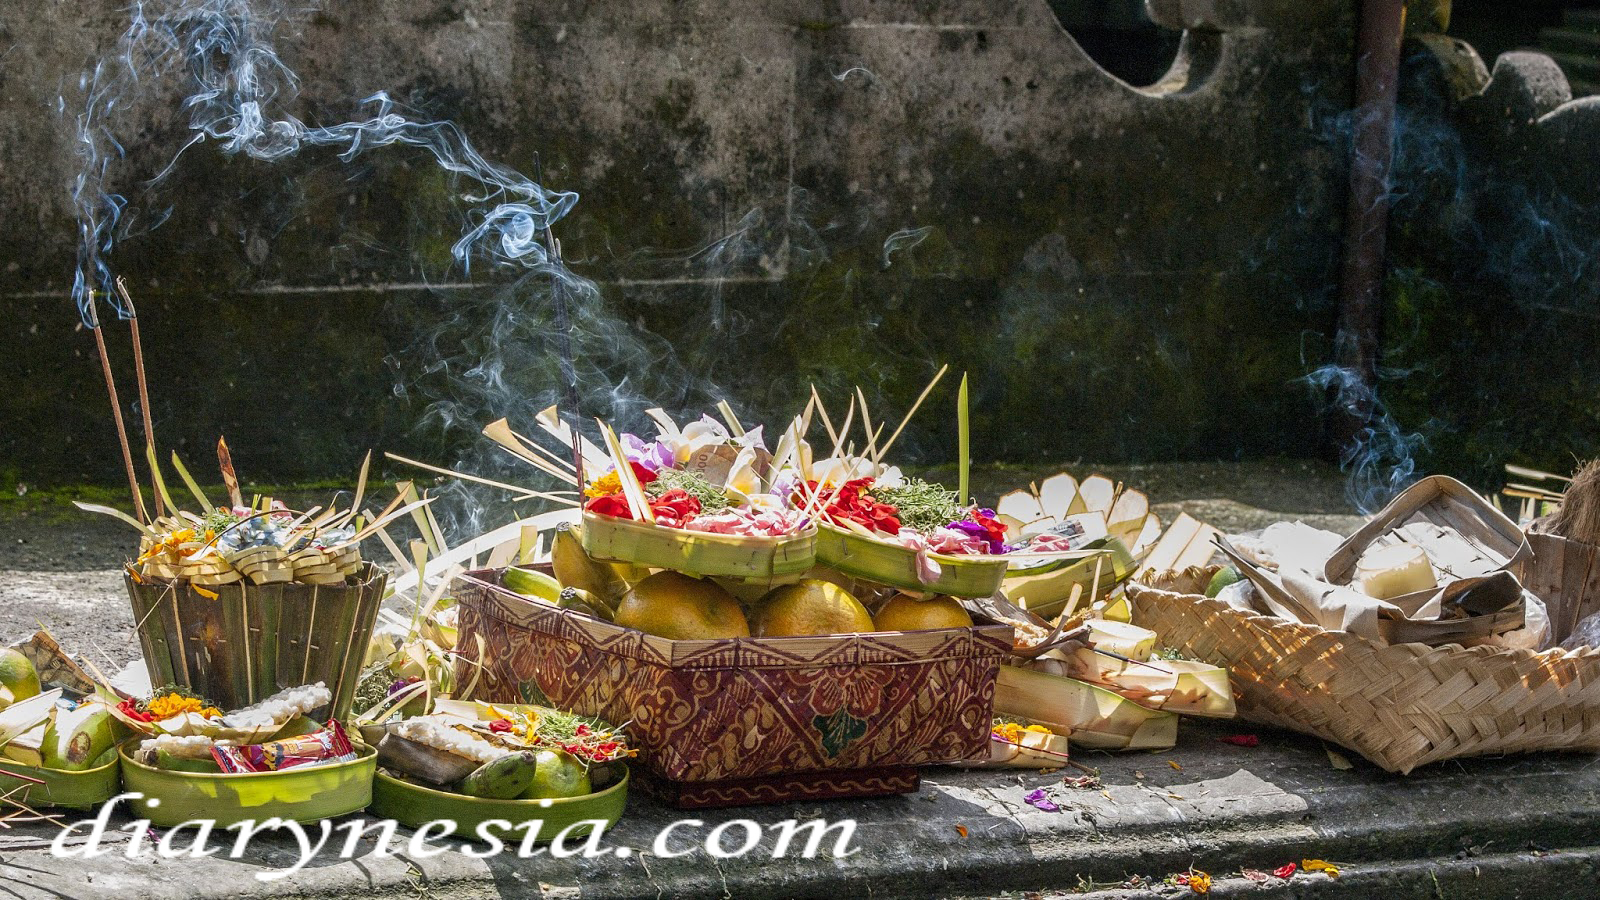 when and where bali festivals and events are held, top festival bali, top events bali, diarynesia